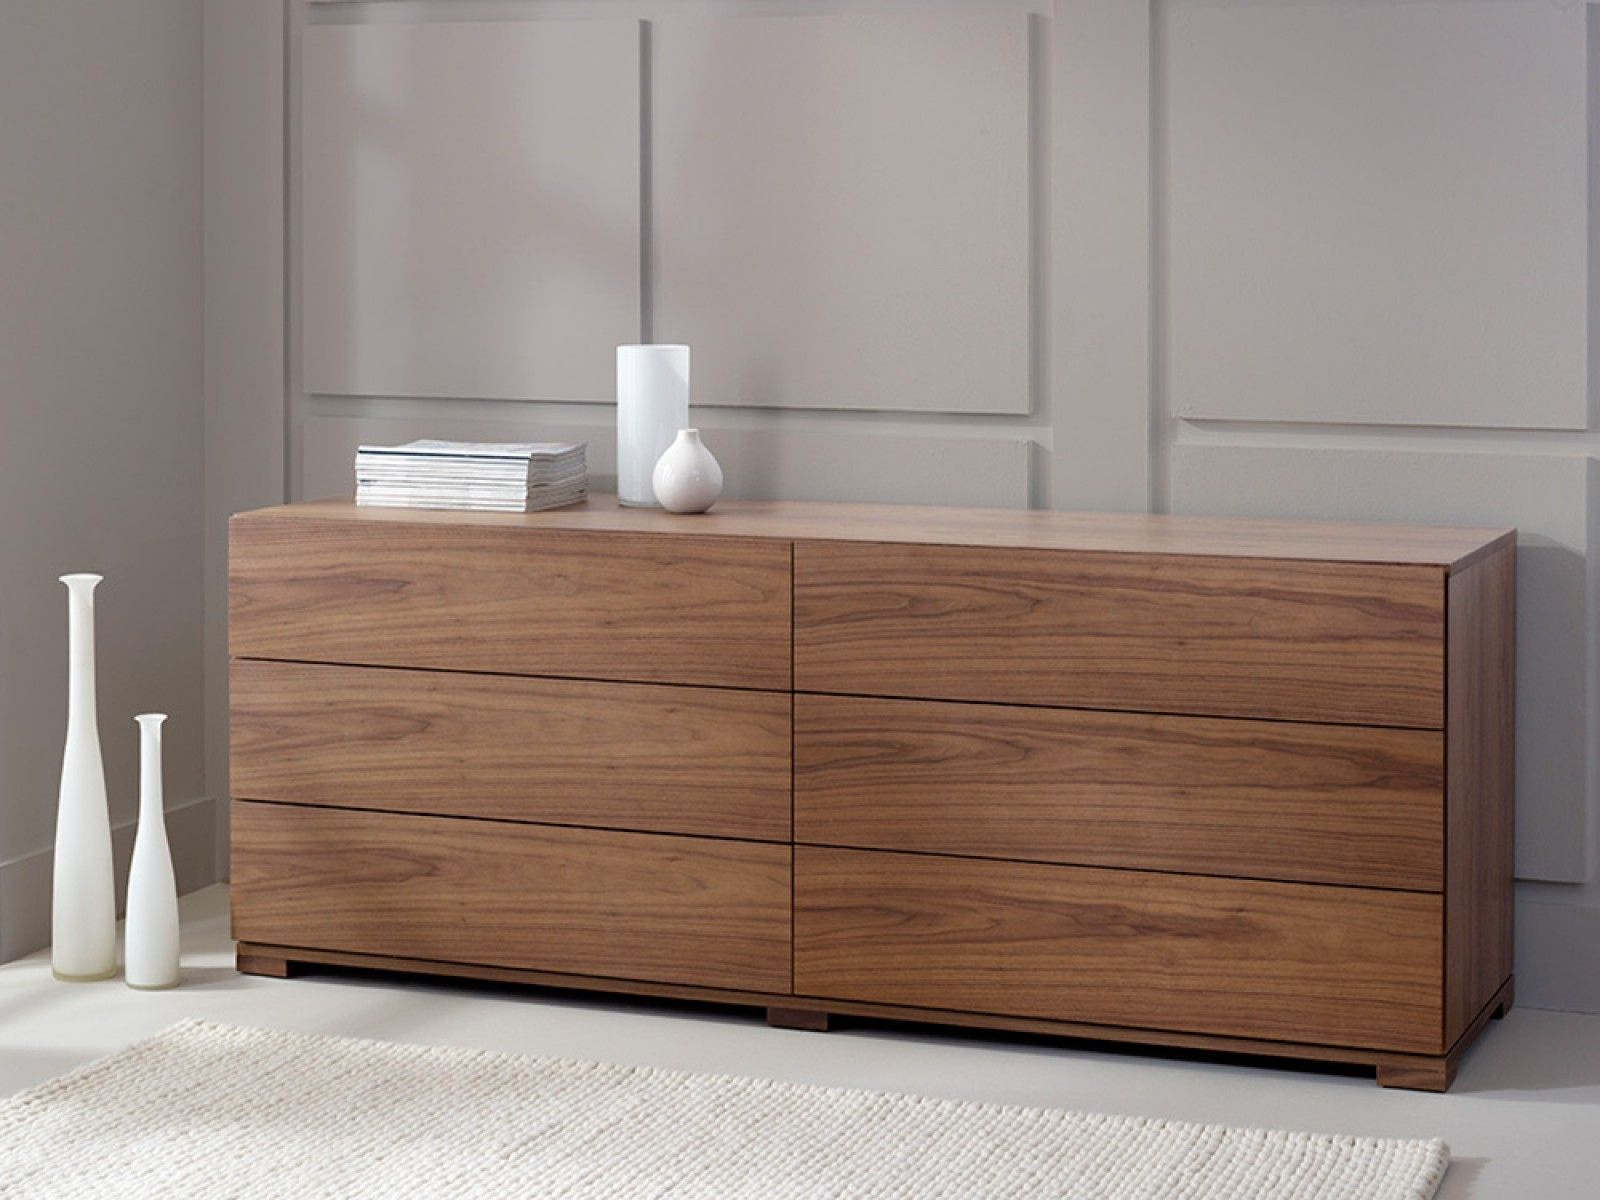 6 Drawer Chest Walnut | Product Furniture in 2019 ...